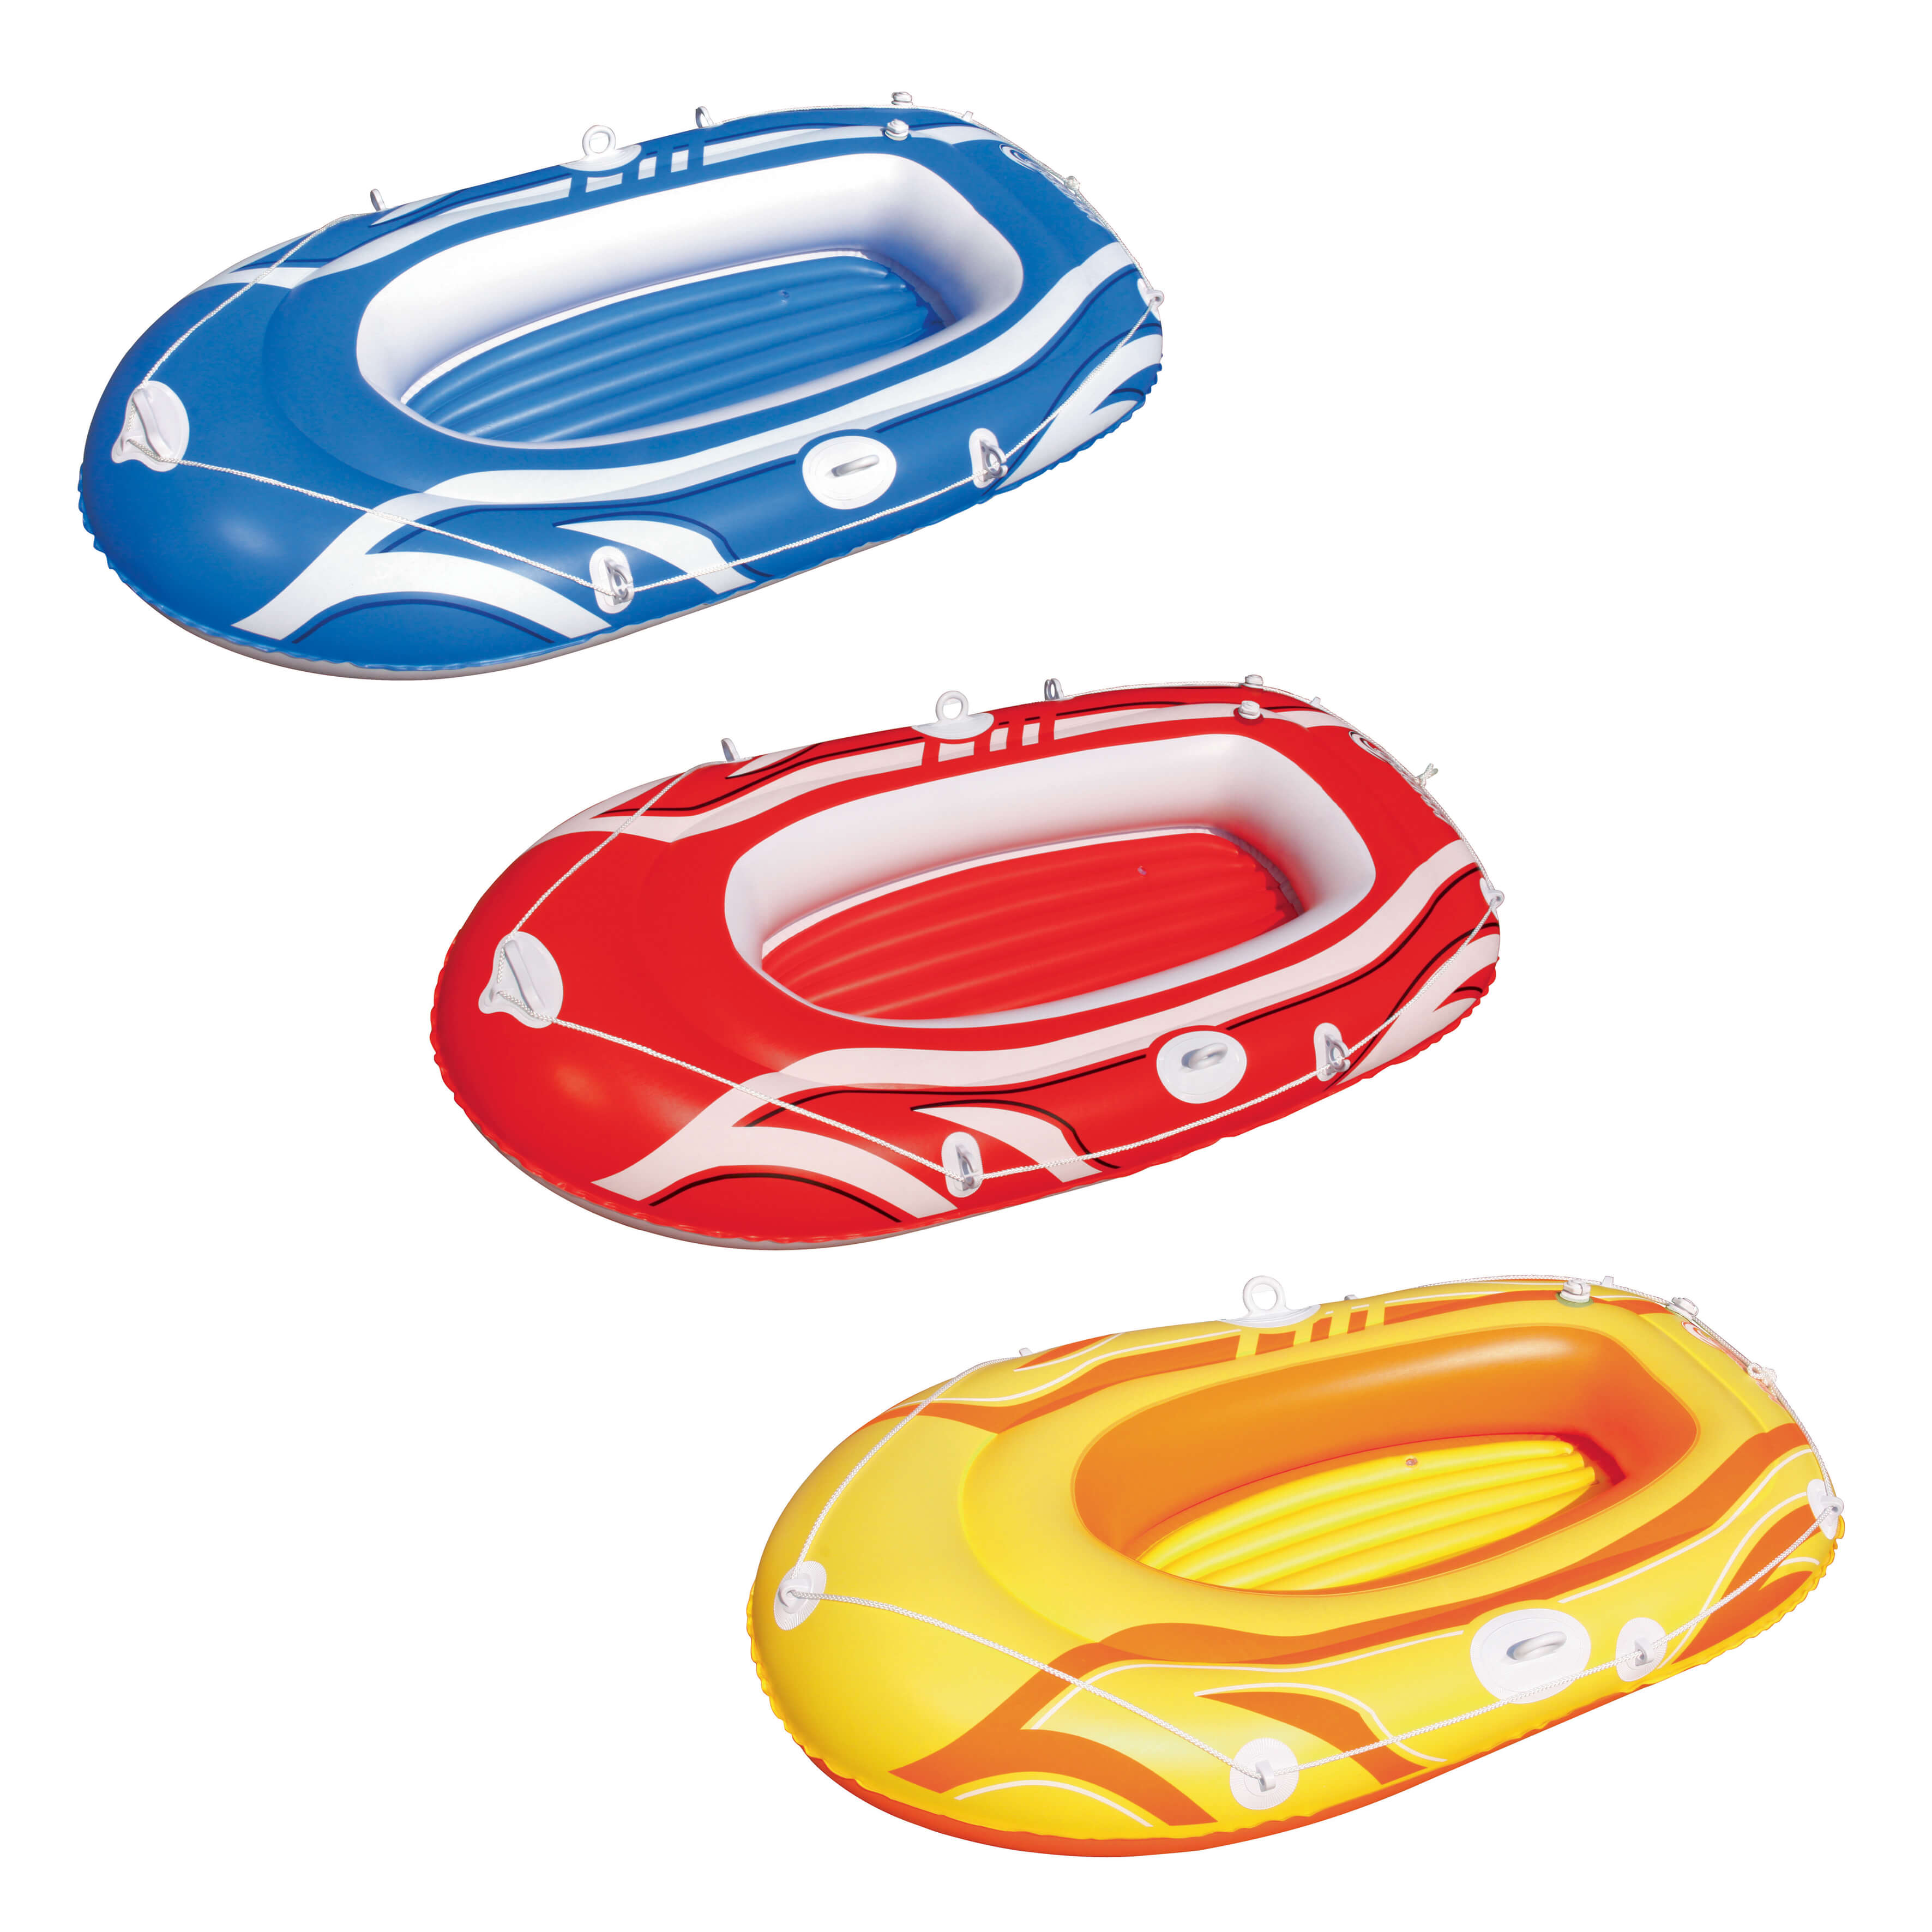 toko mainan online BESTWAY SPLASH AND PLAY BOAT - 61052